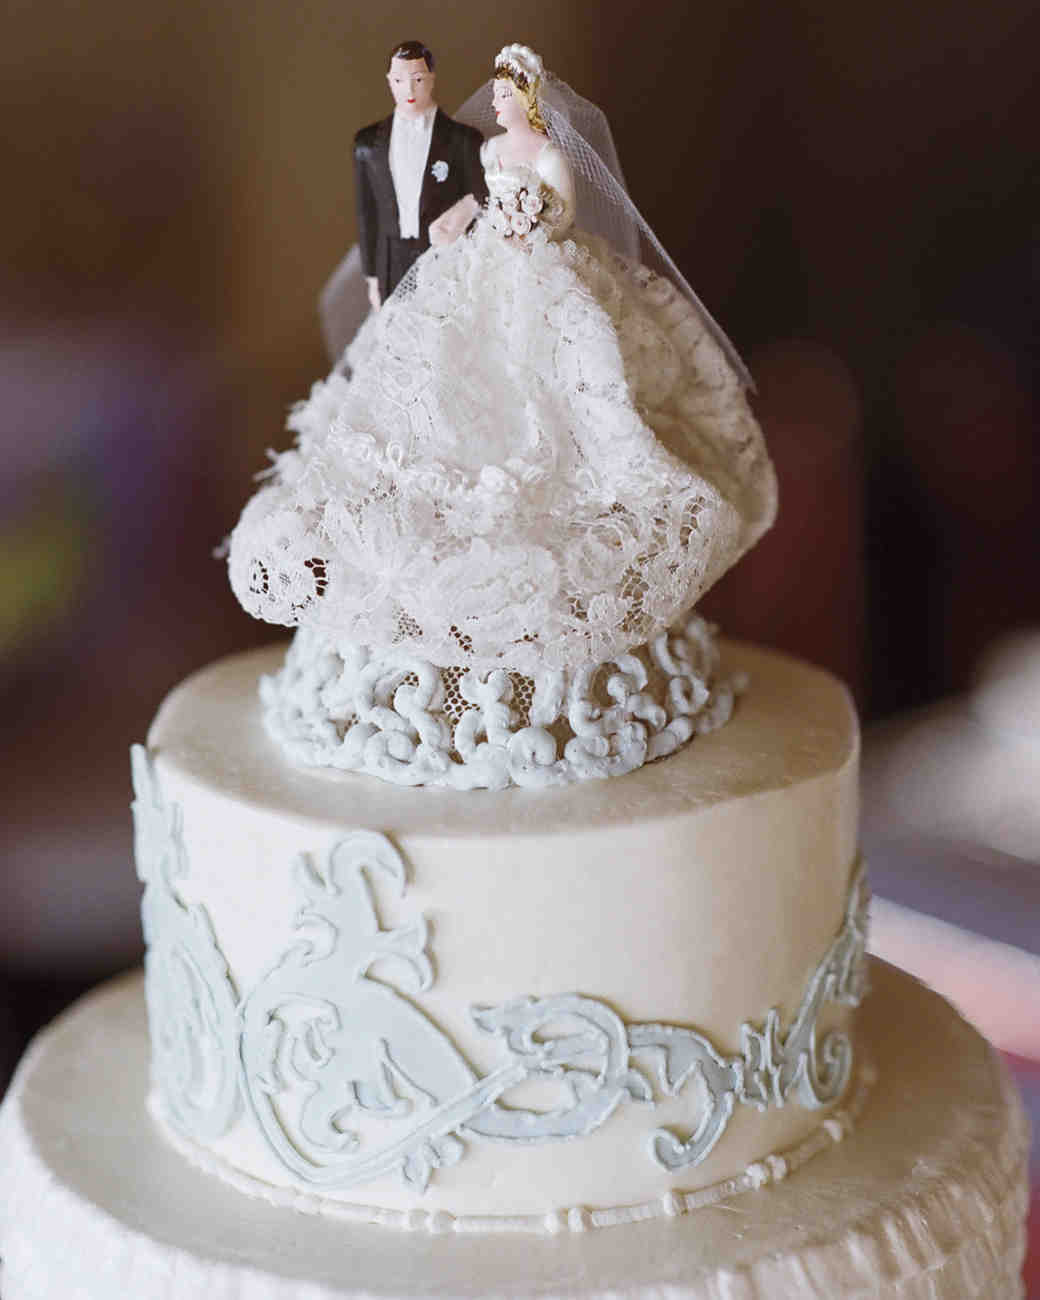 Wedding Cakes Ornaments  Wedding Cakes Toppers Ideas That Inspire The Wedding Day